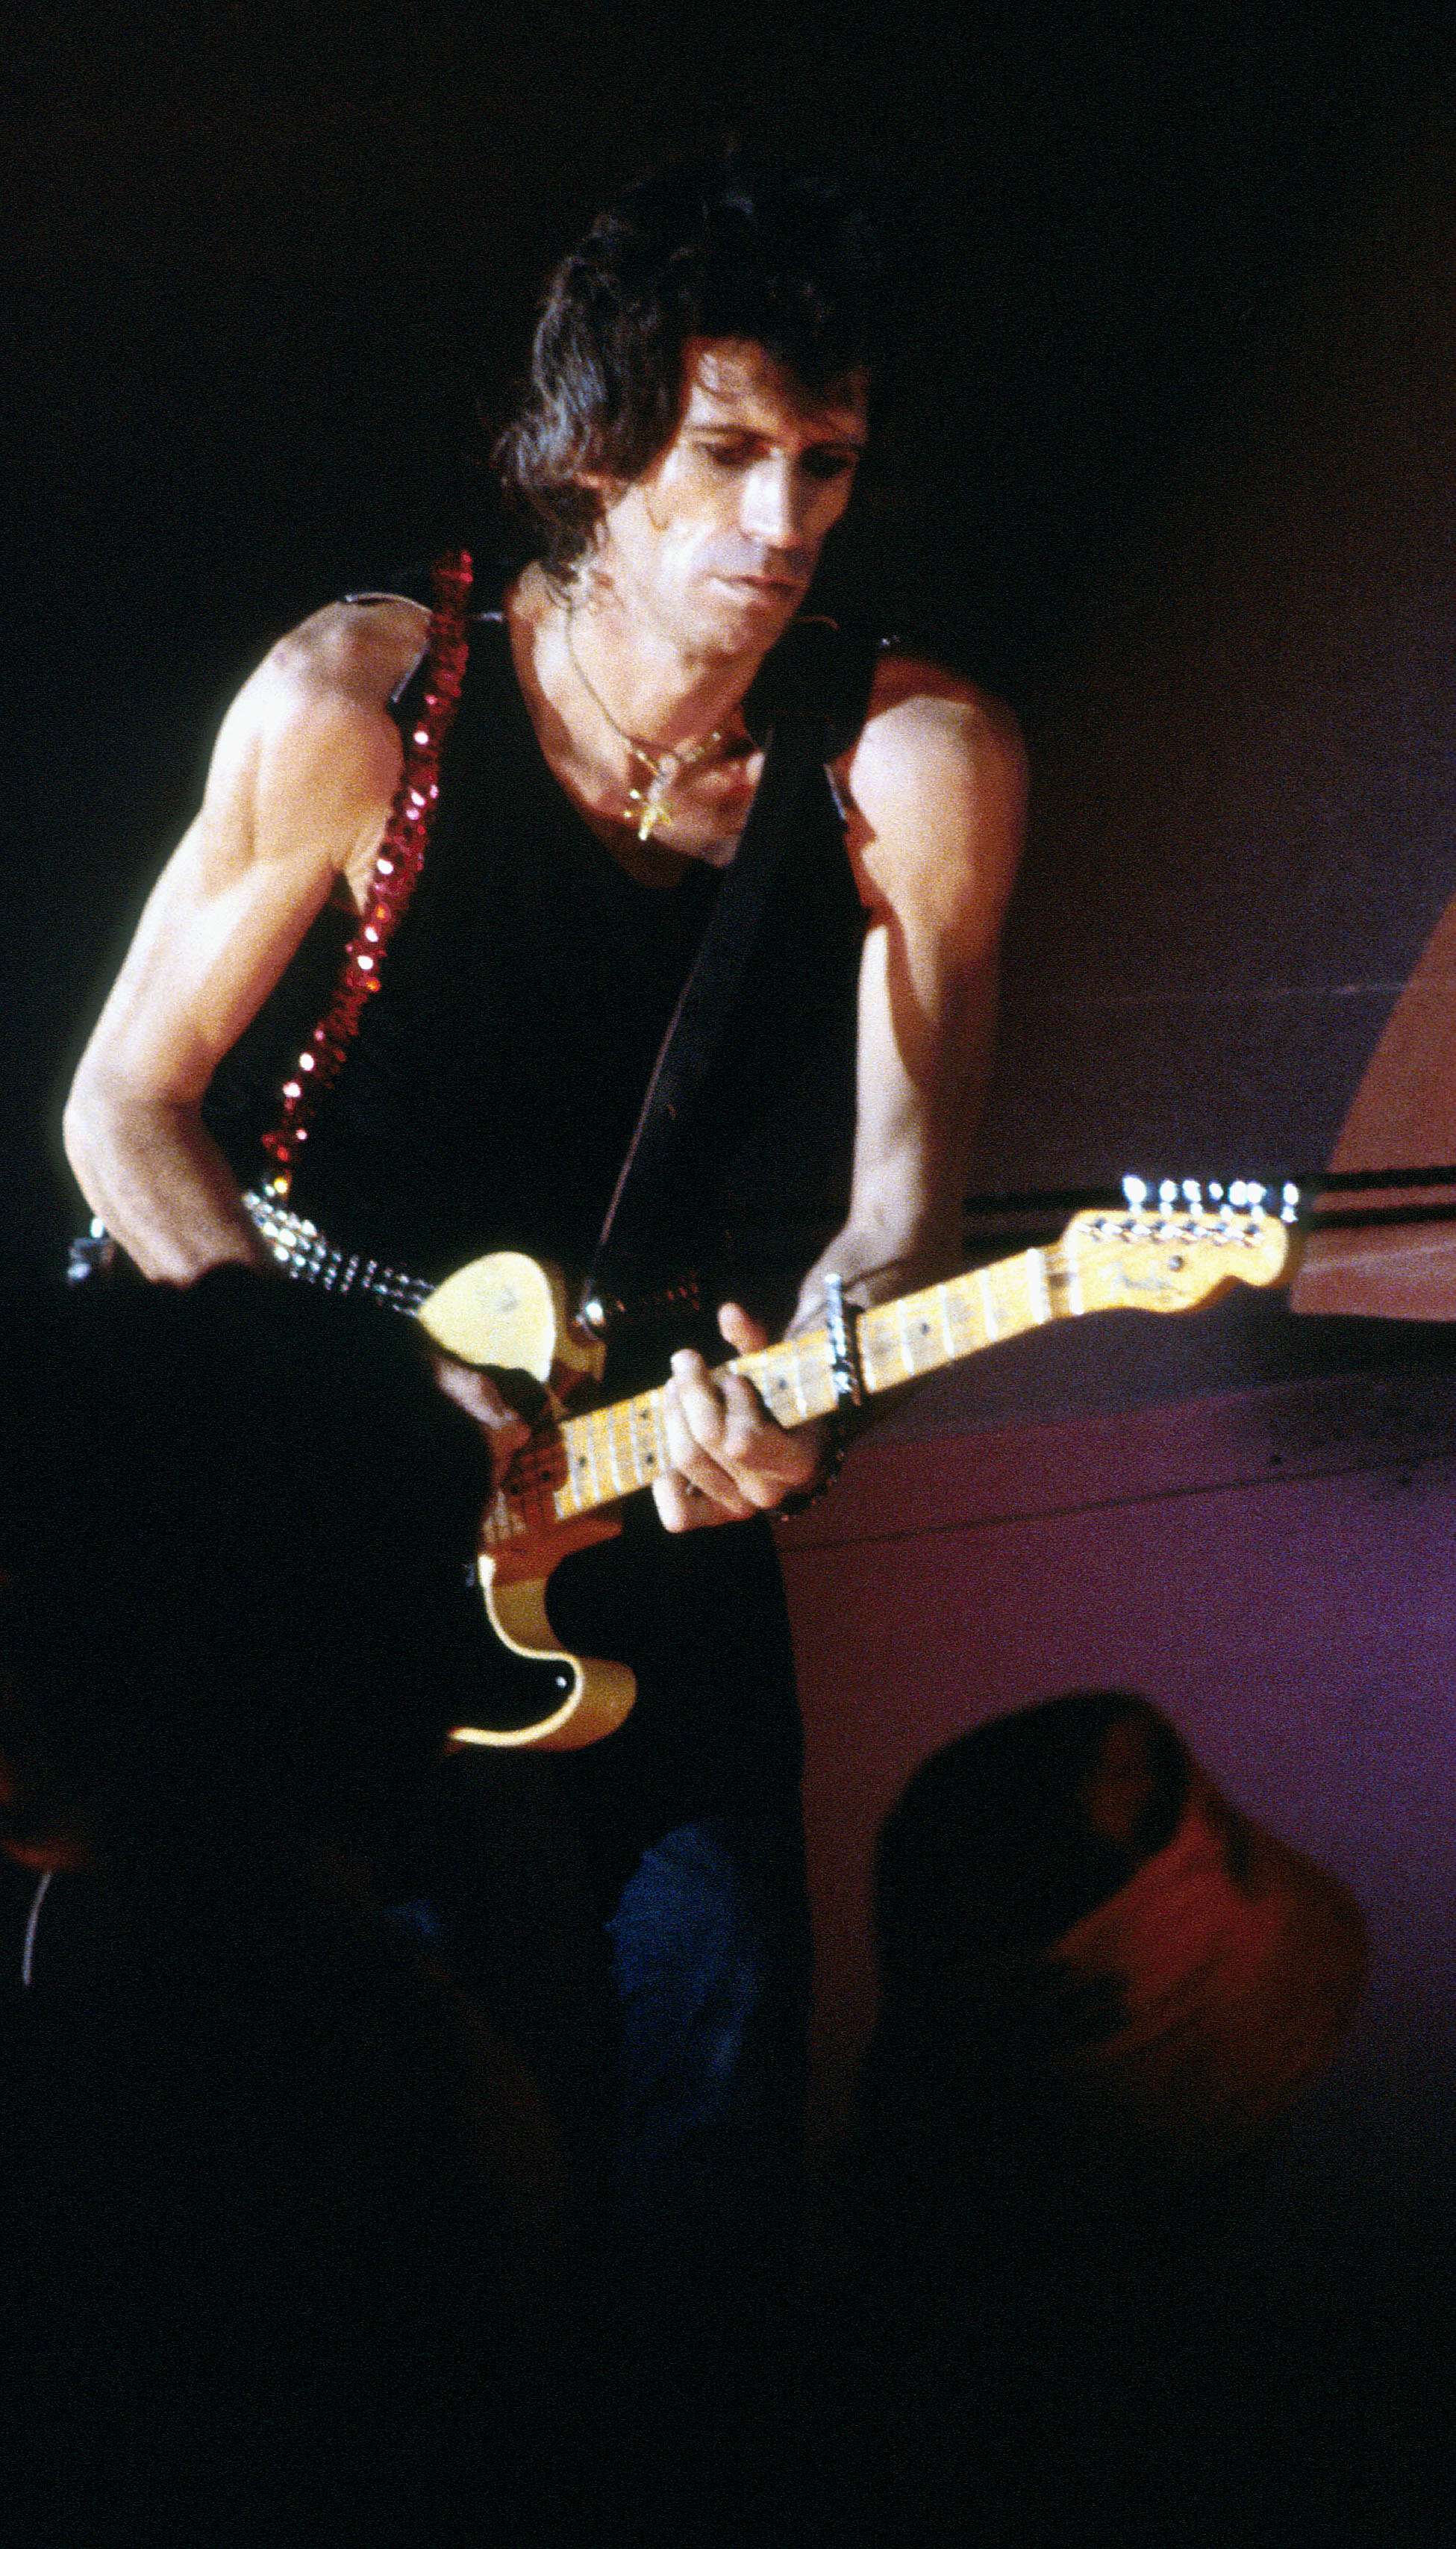 Keith Richards con su guitarra fender telecaster